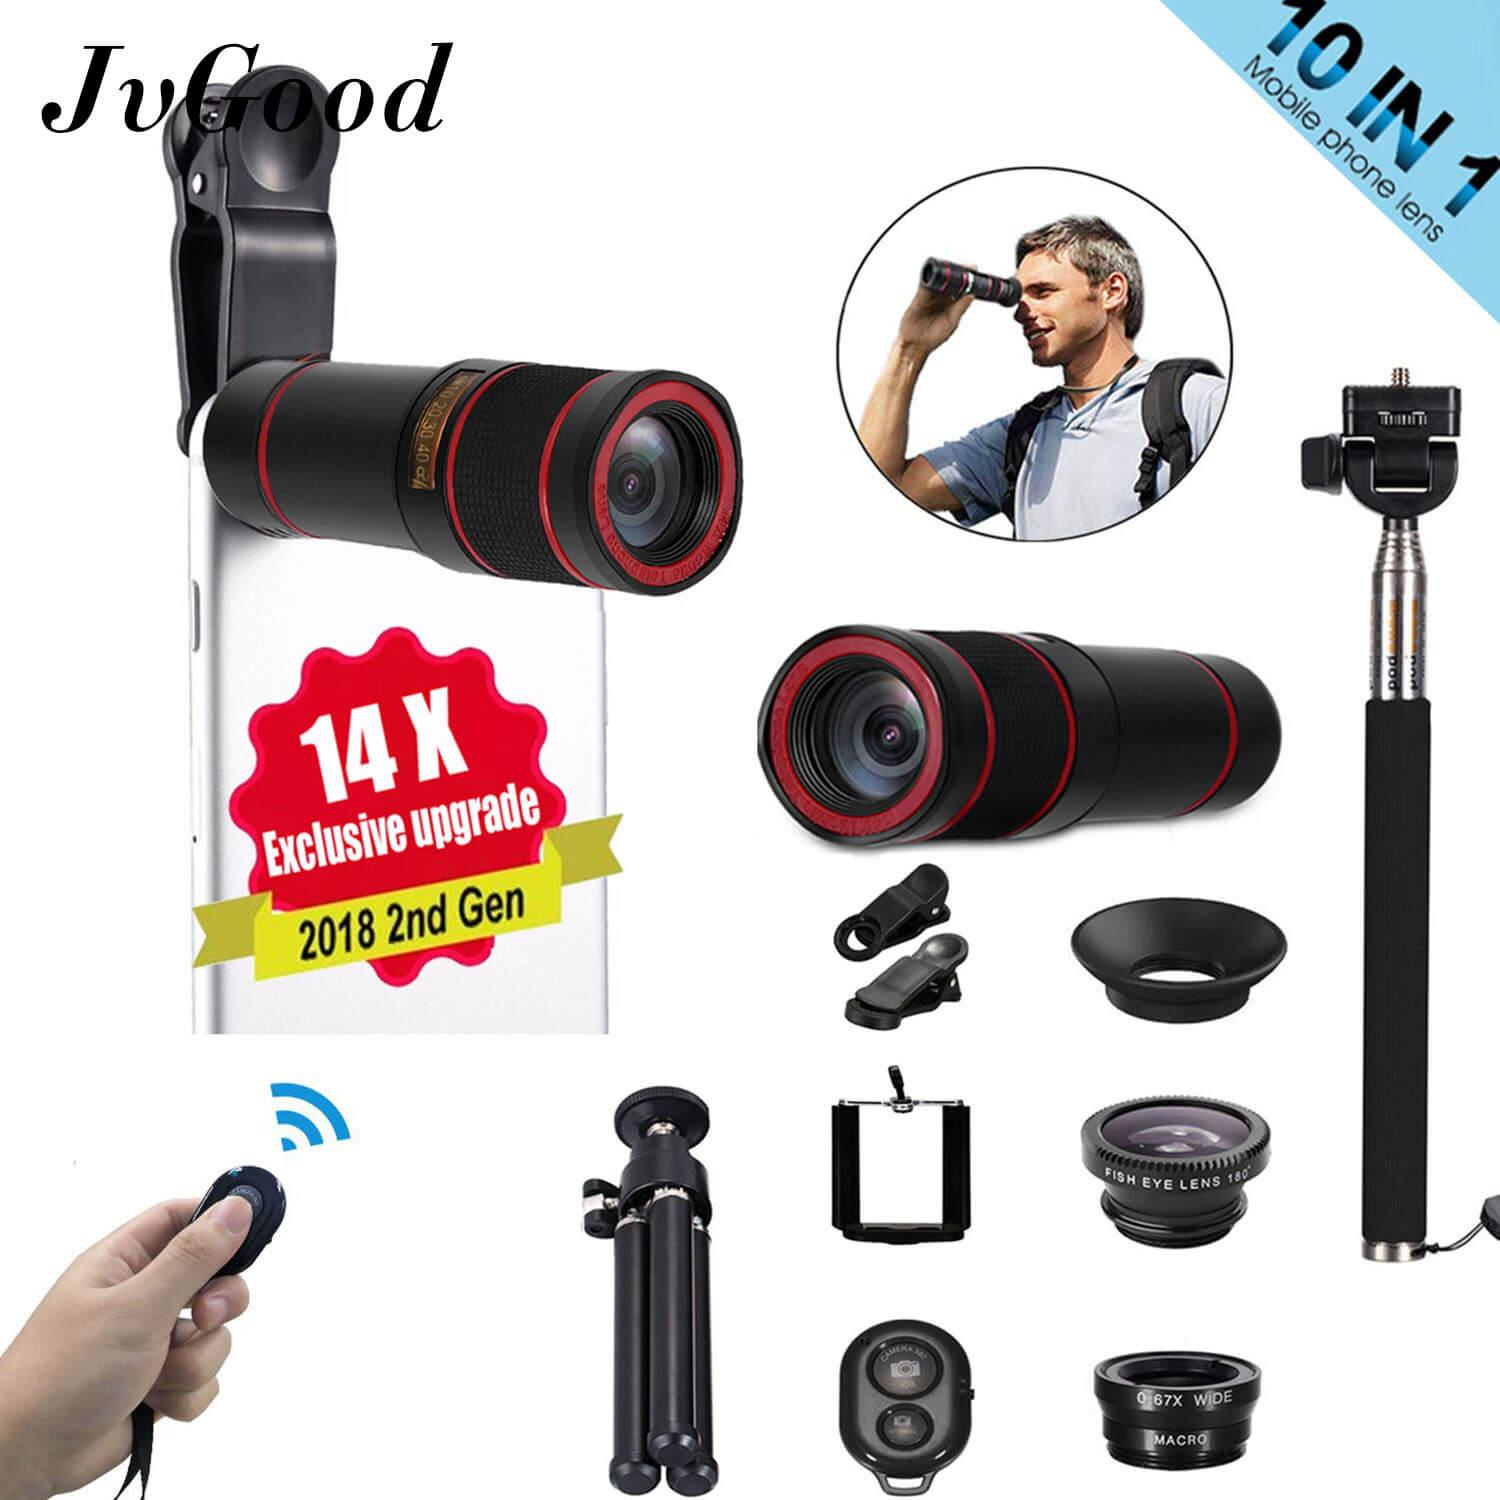 JvGood Lensa Smartphone Lensa Kamera Phone Camera Lens Set For Mobile Phone 10 In1 Travel Black Fisheye+Wide Angle+Macro+14X Telescope Telephoto Lens+Mini Tripod+Phone Holder